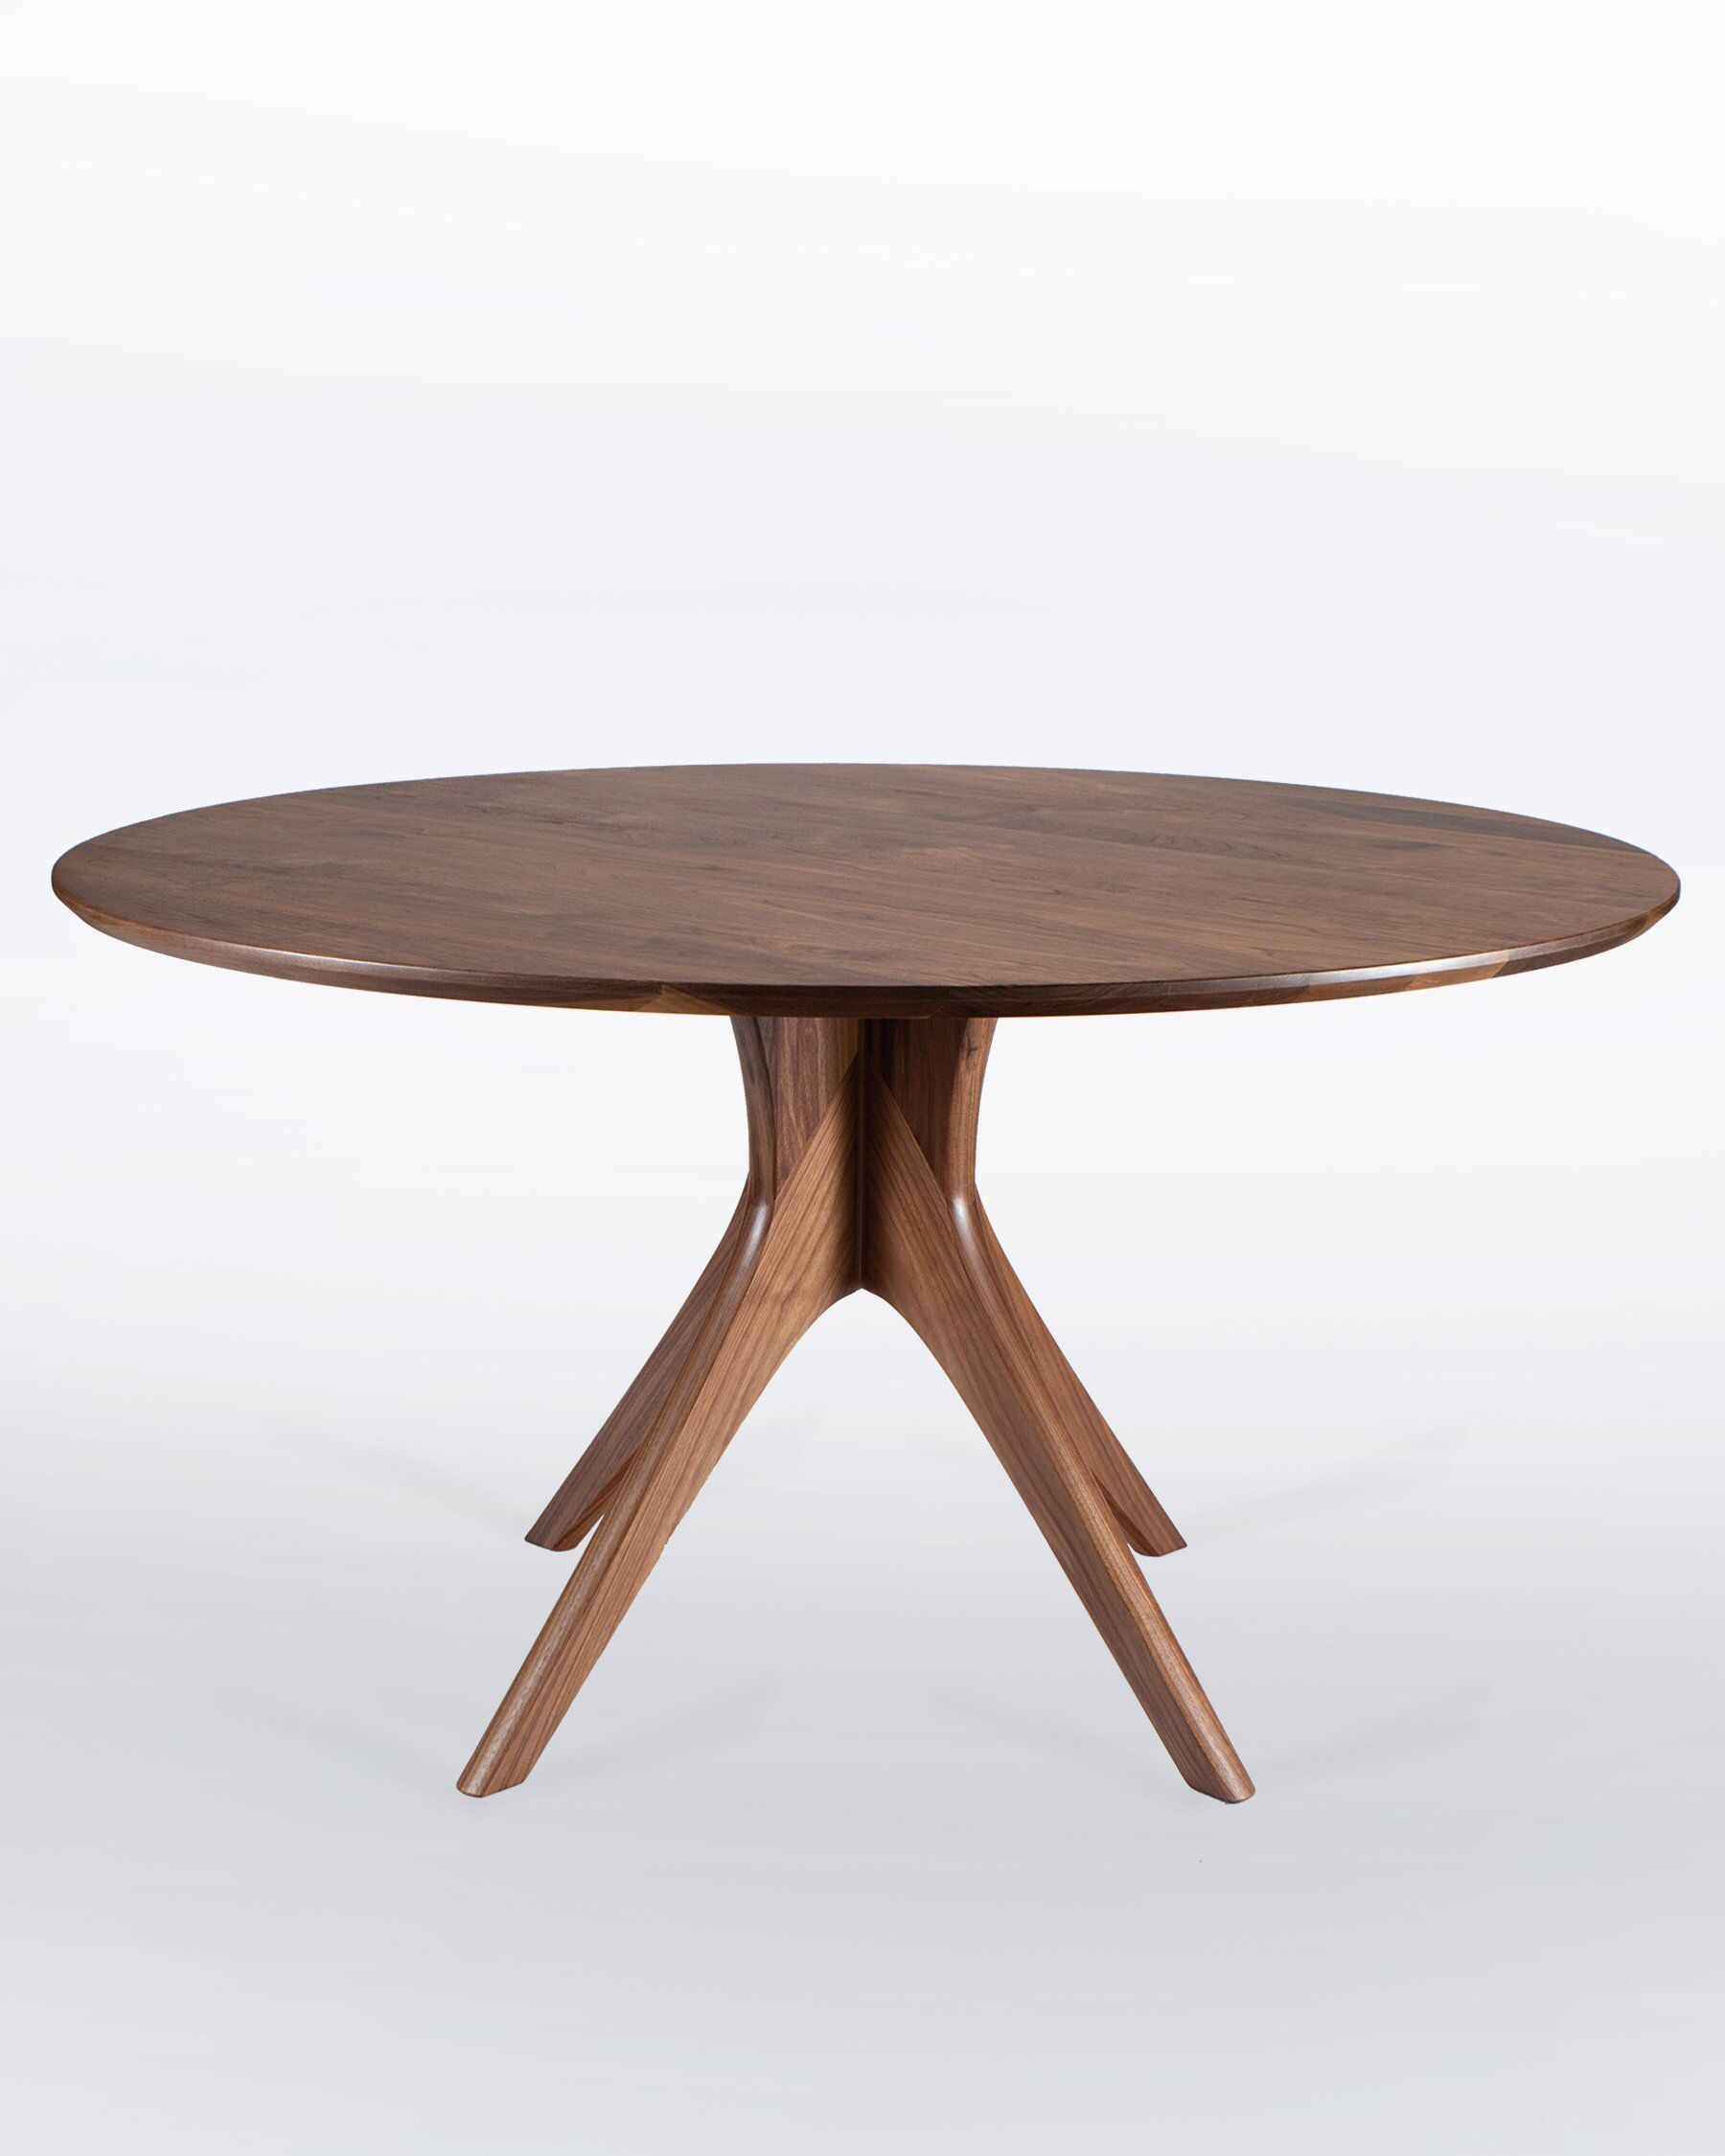 Large Round Dining Table In Solid Walnut With Mid Century